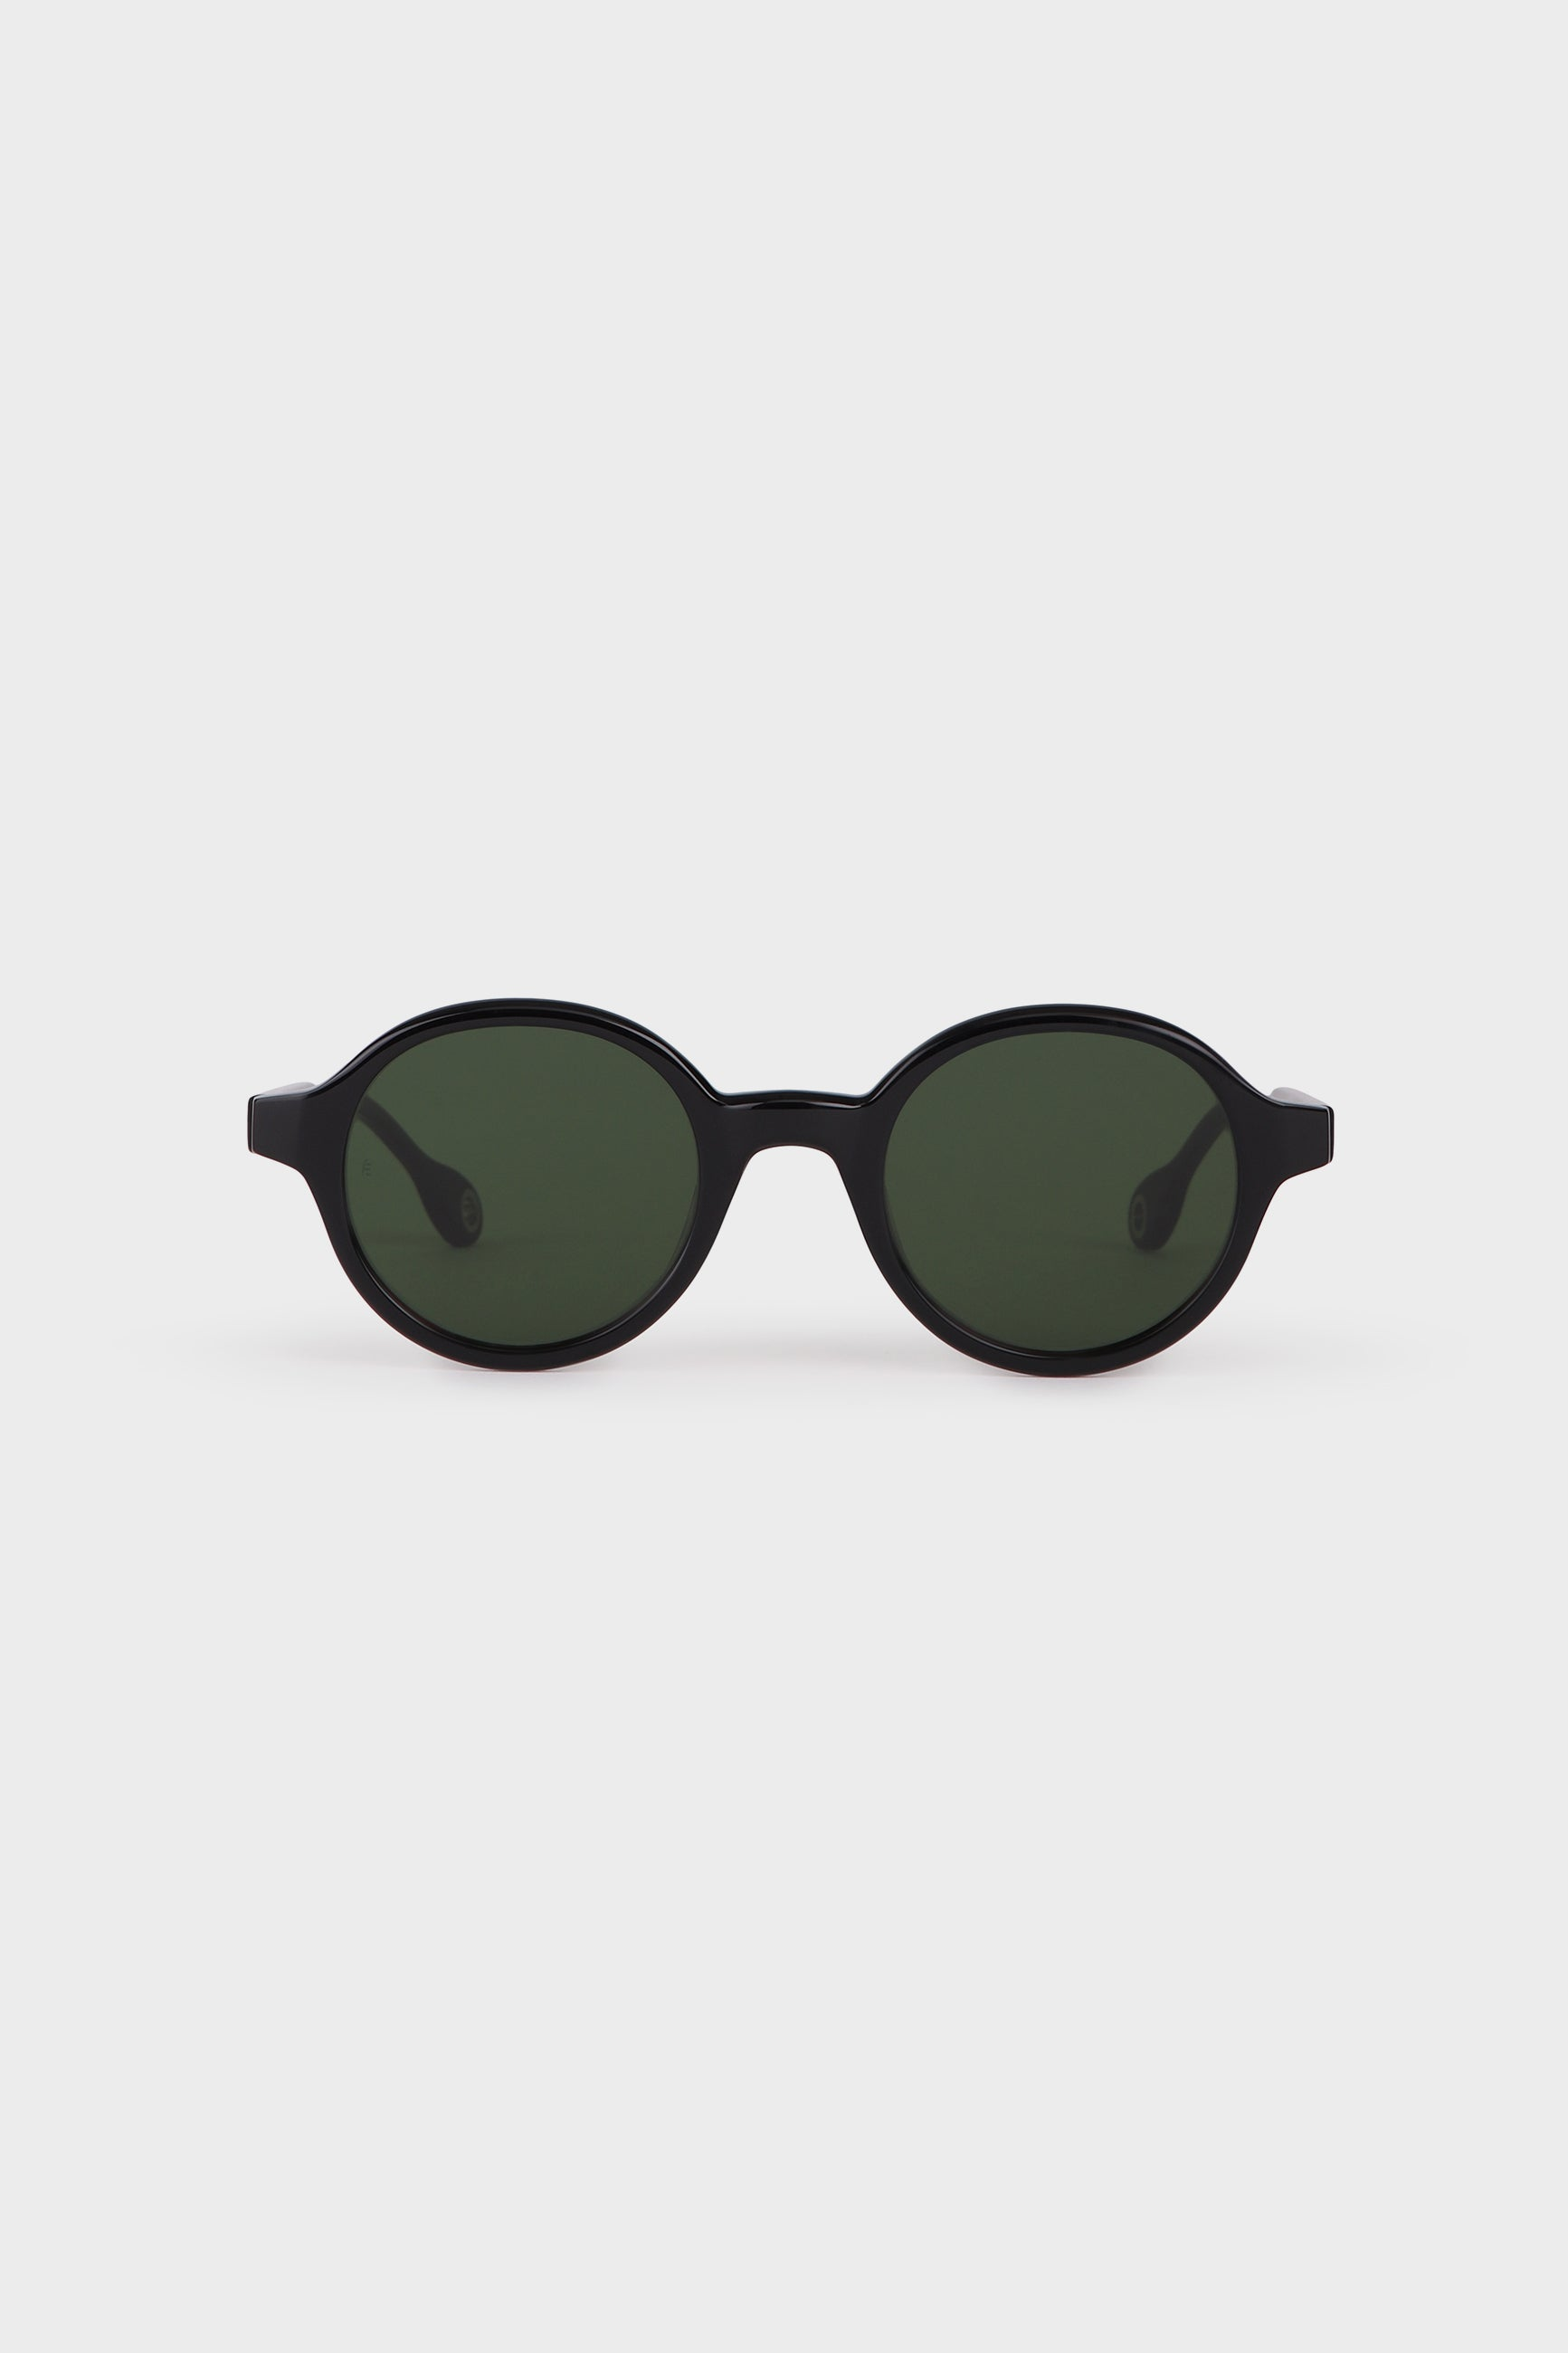 Études Bakayoko Black Sunglasses 1